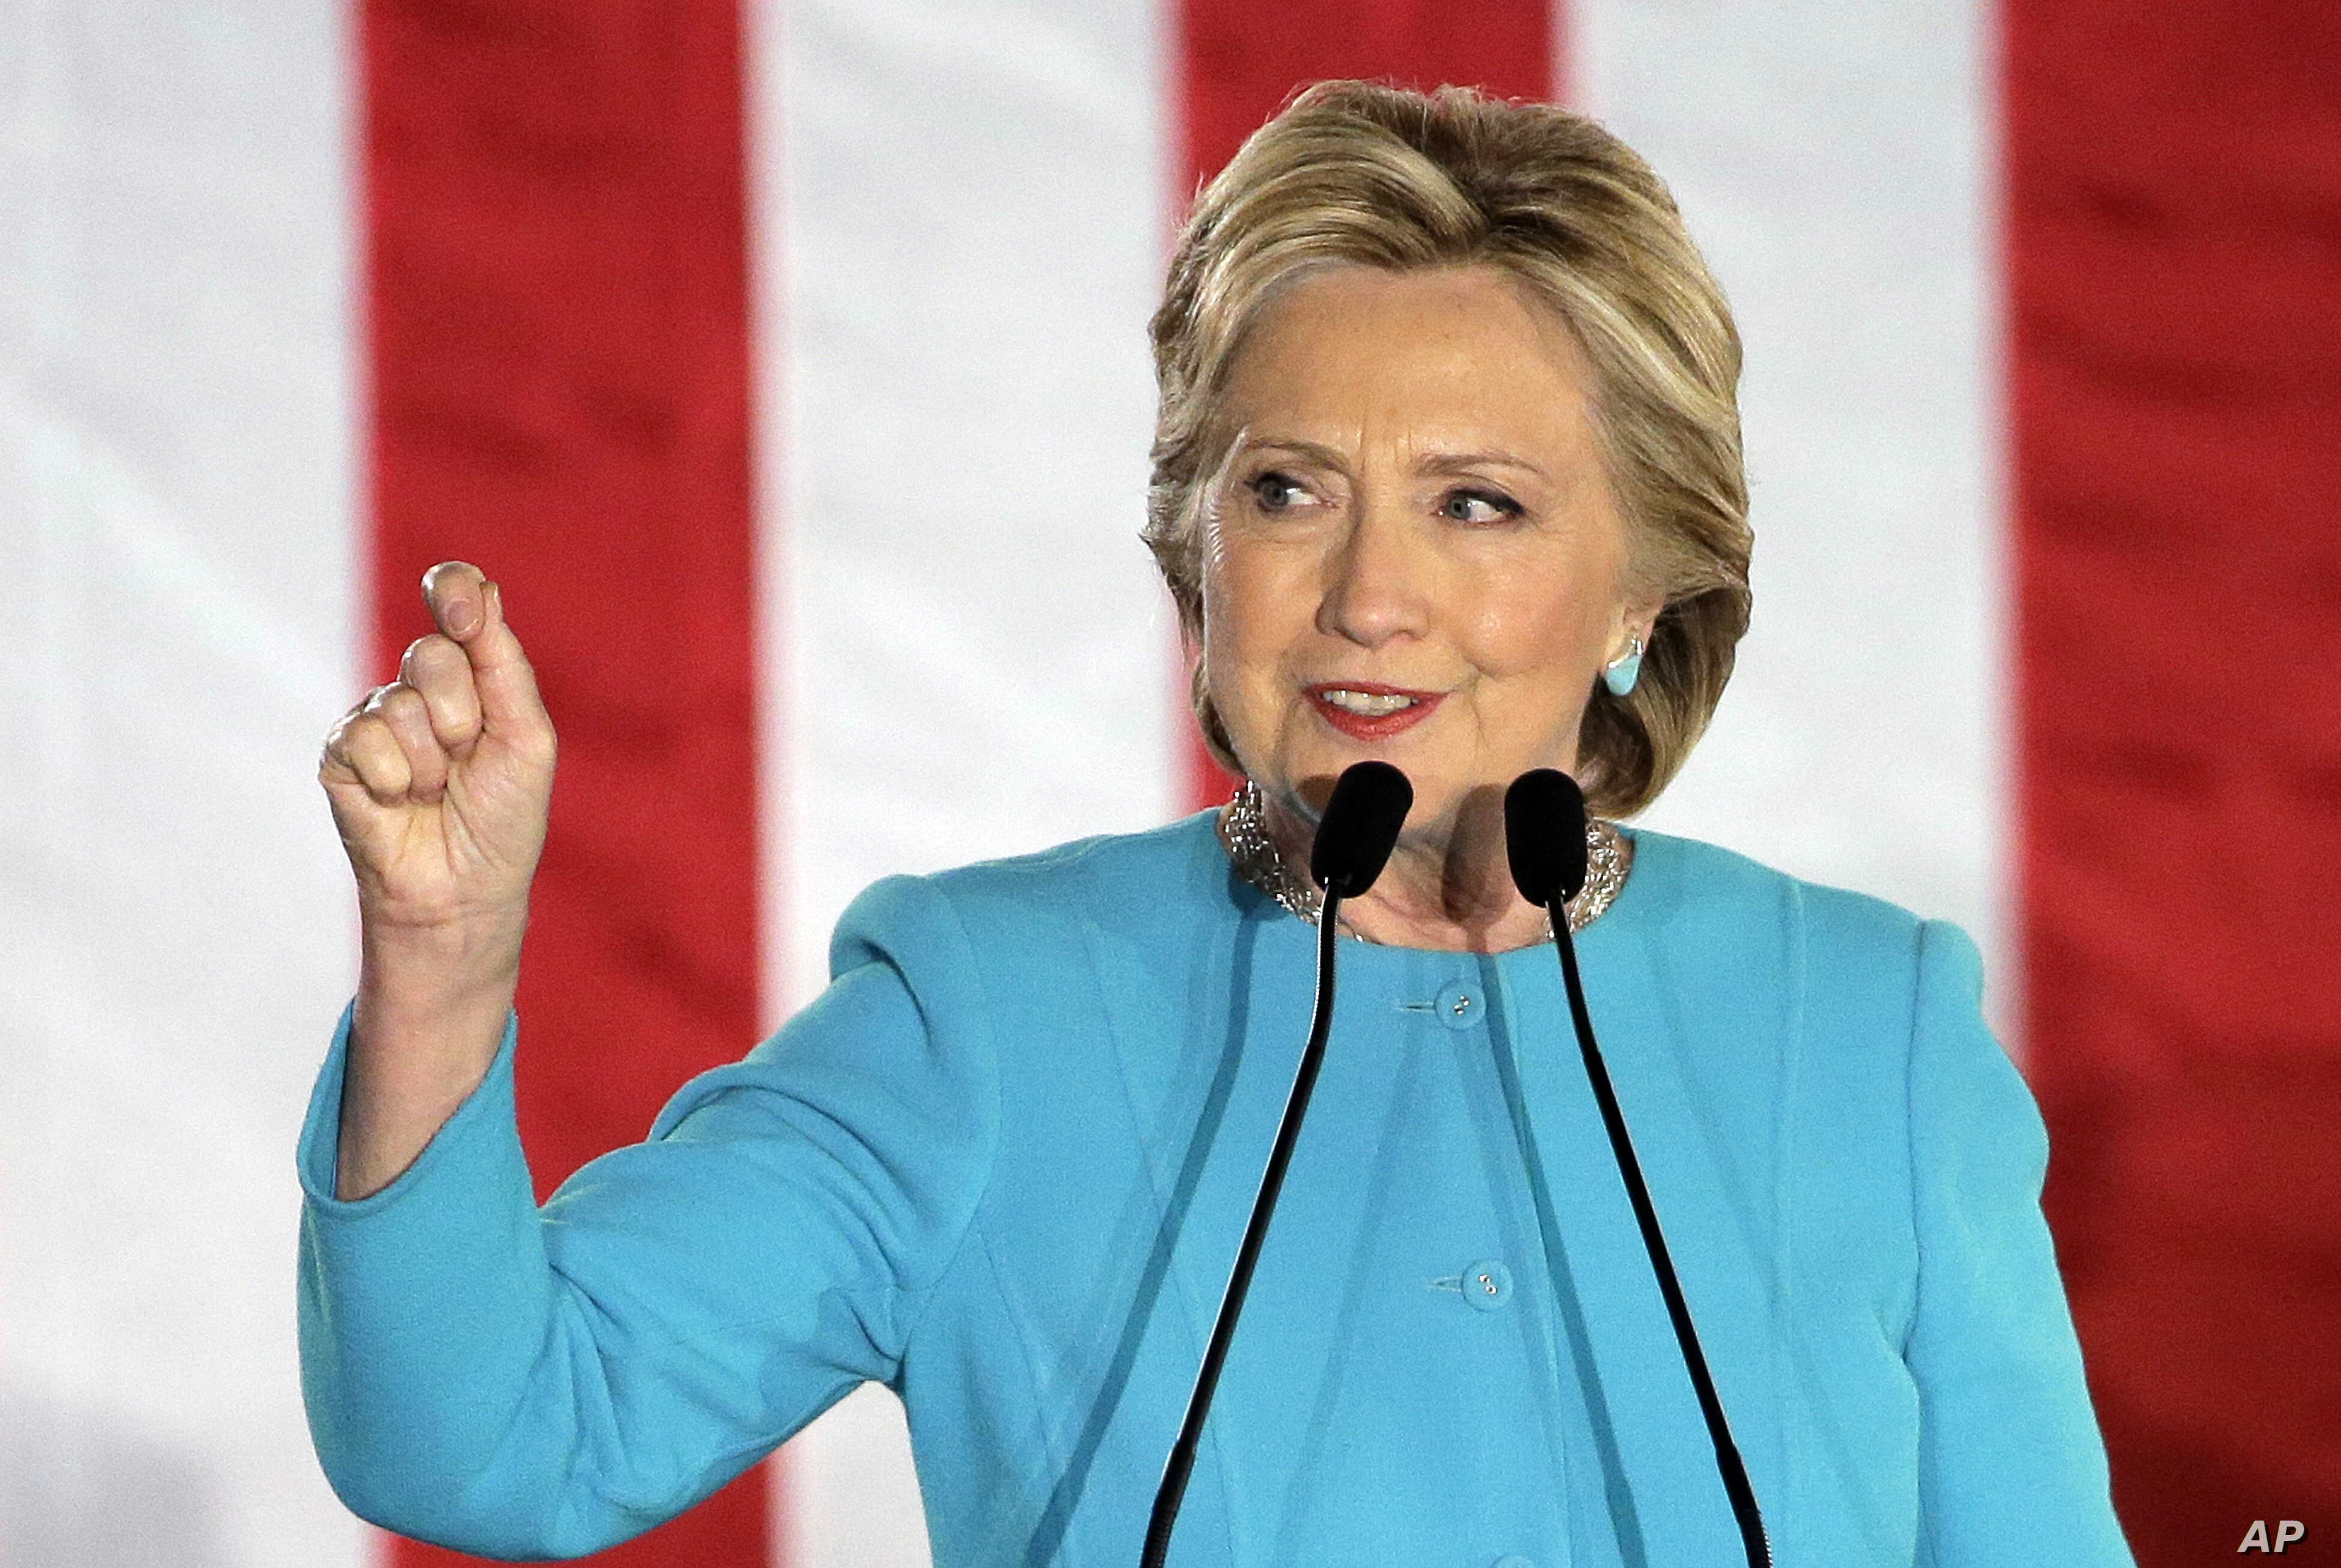 Democratic presidential candidate Hillary Clinton speaks during a campaign rally, Nov. 6, 2016, in Manchester, N.H.